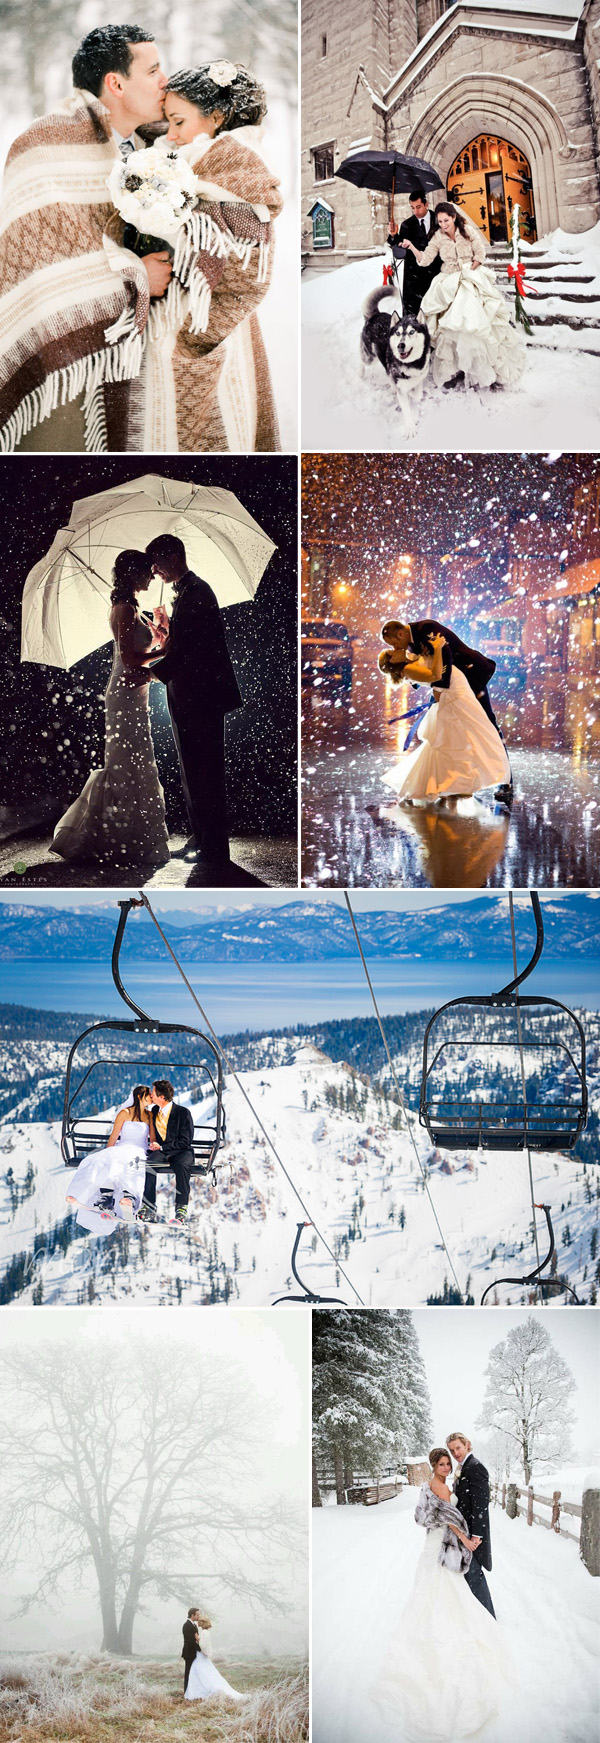 Snowy winter wedding photo inspiration